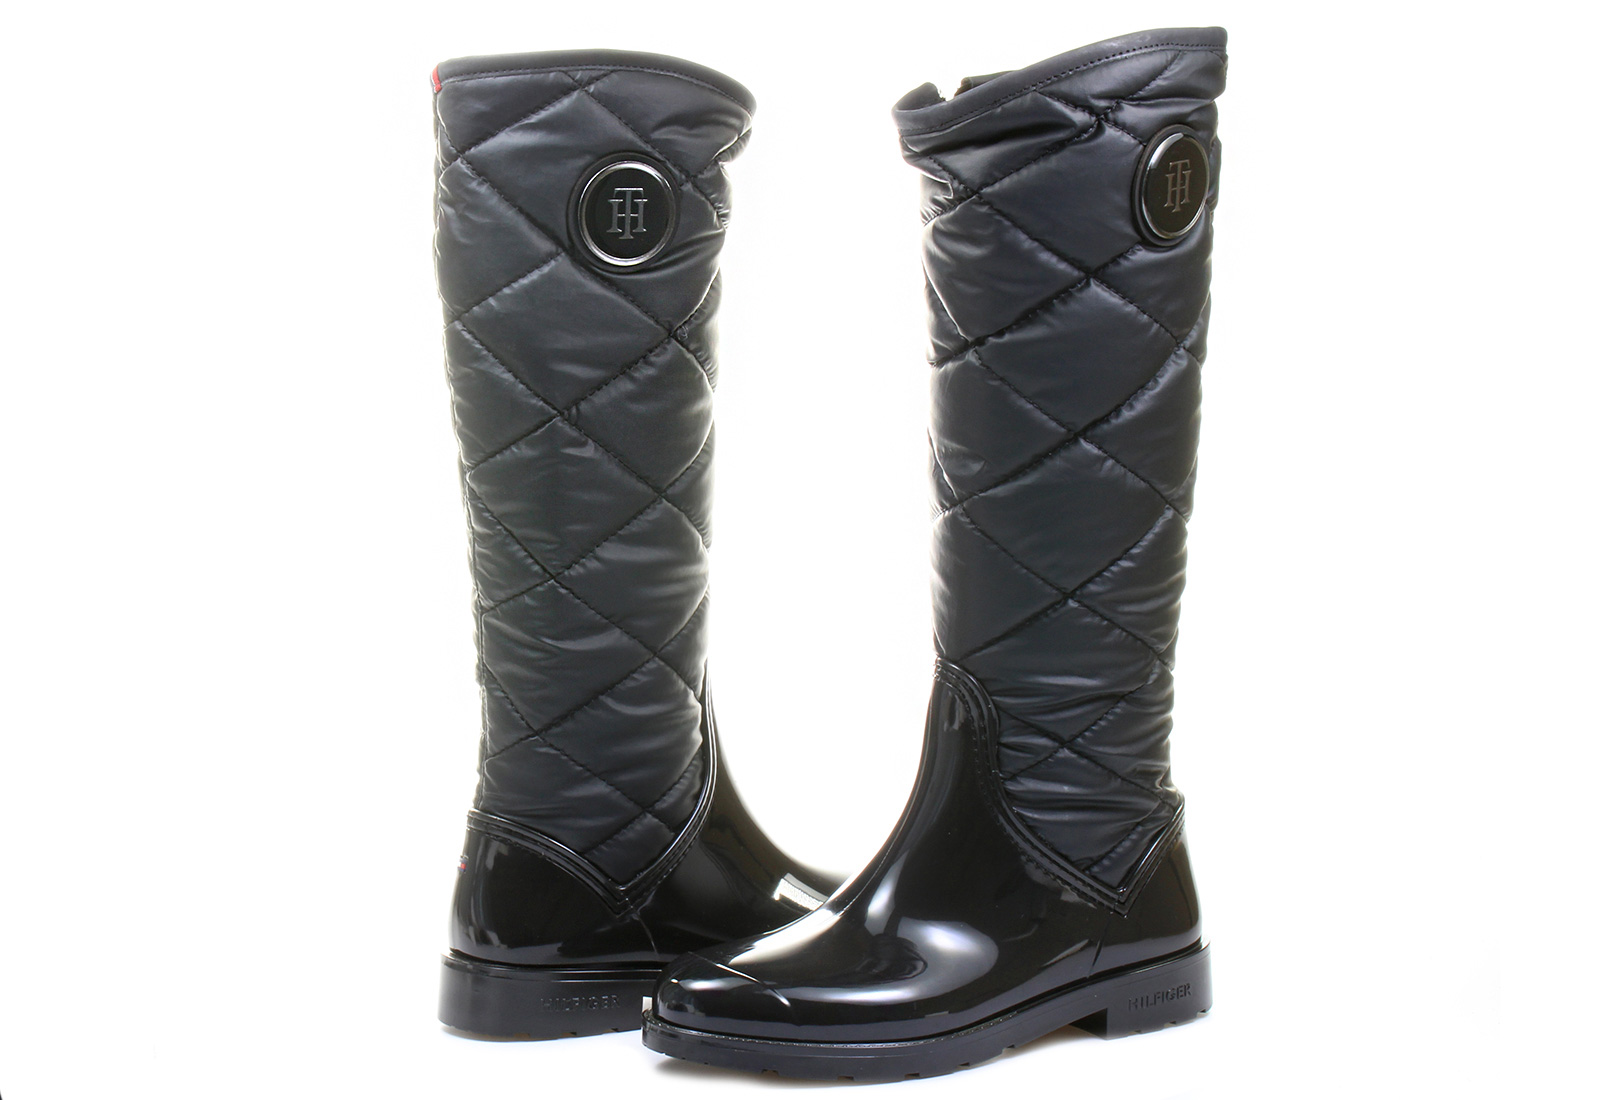 Tommy Hilfiger Boots Oxford 3 12f 4795 990 Online